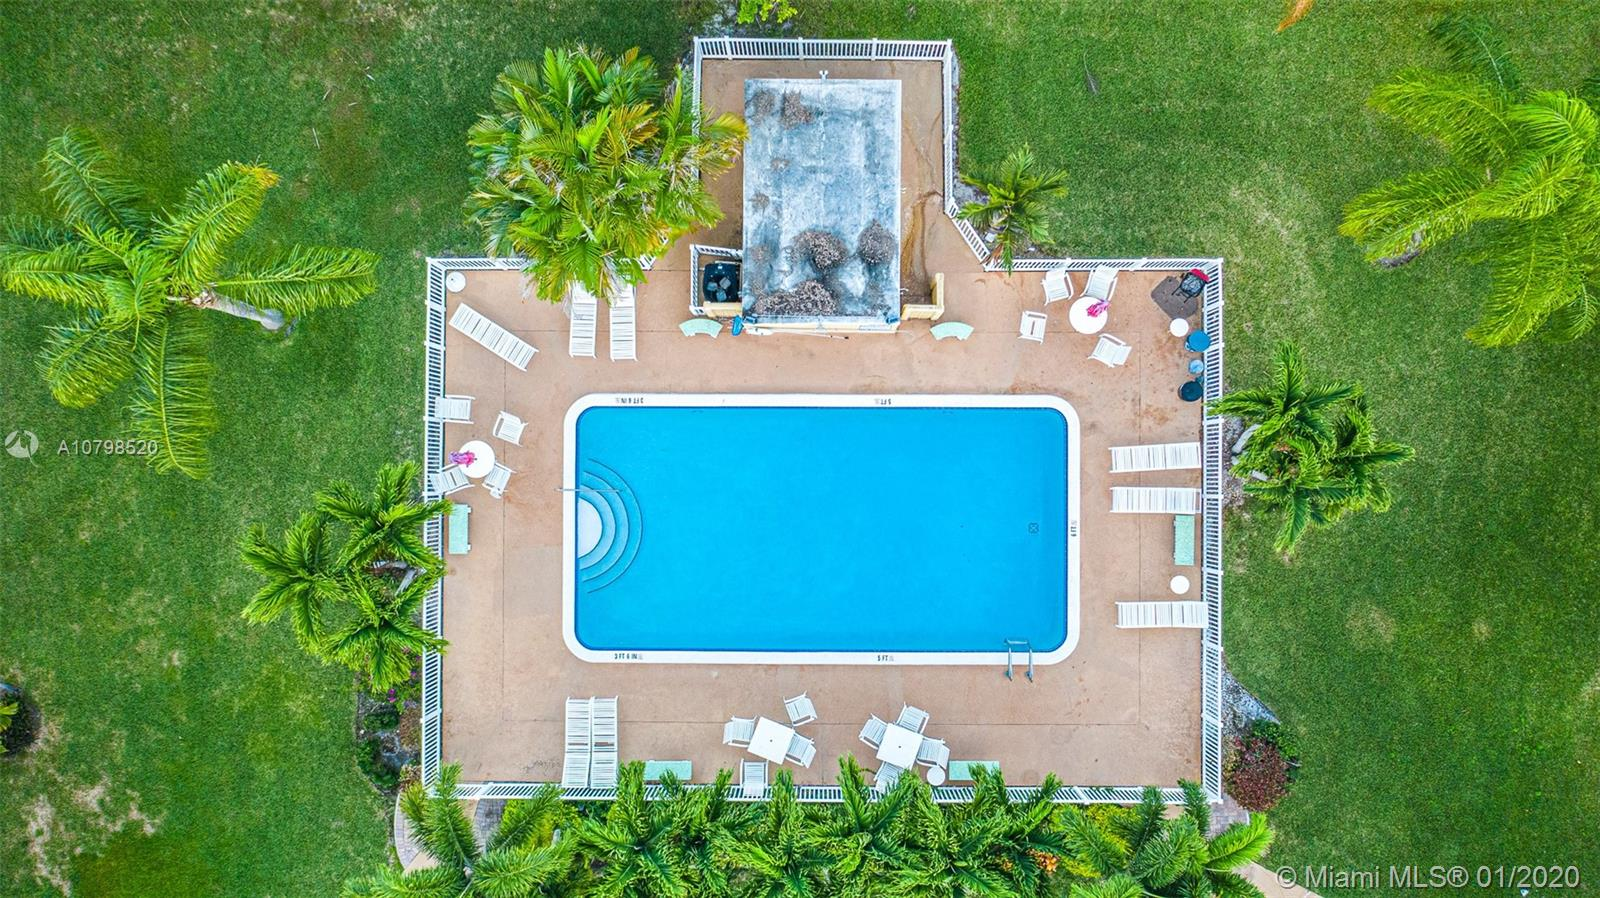 2 Bedrooms 2 Bathroom with a beautiful pool view from a large Balcony everything you need for a new beginning where you call home or an amazing investment property for annual rental income. pets are welcome Financing is available low credit, bankruptcy, no problem if you are a tourist with no social Security no problem I will get you approved.